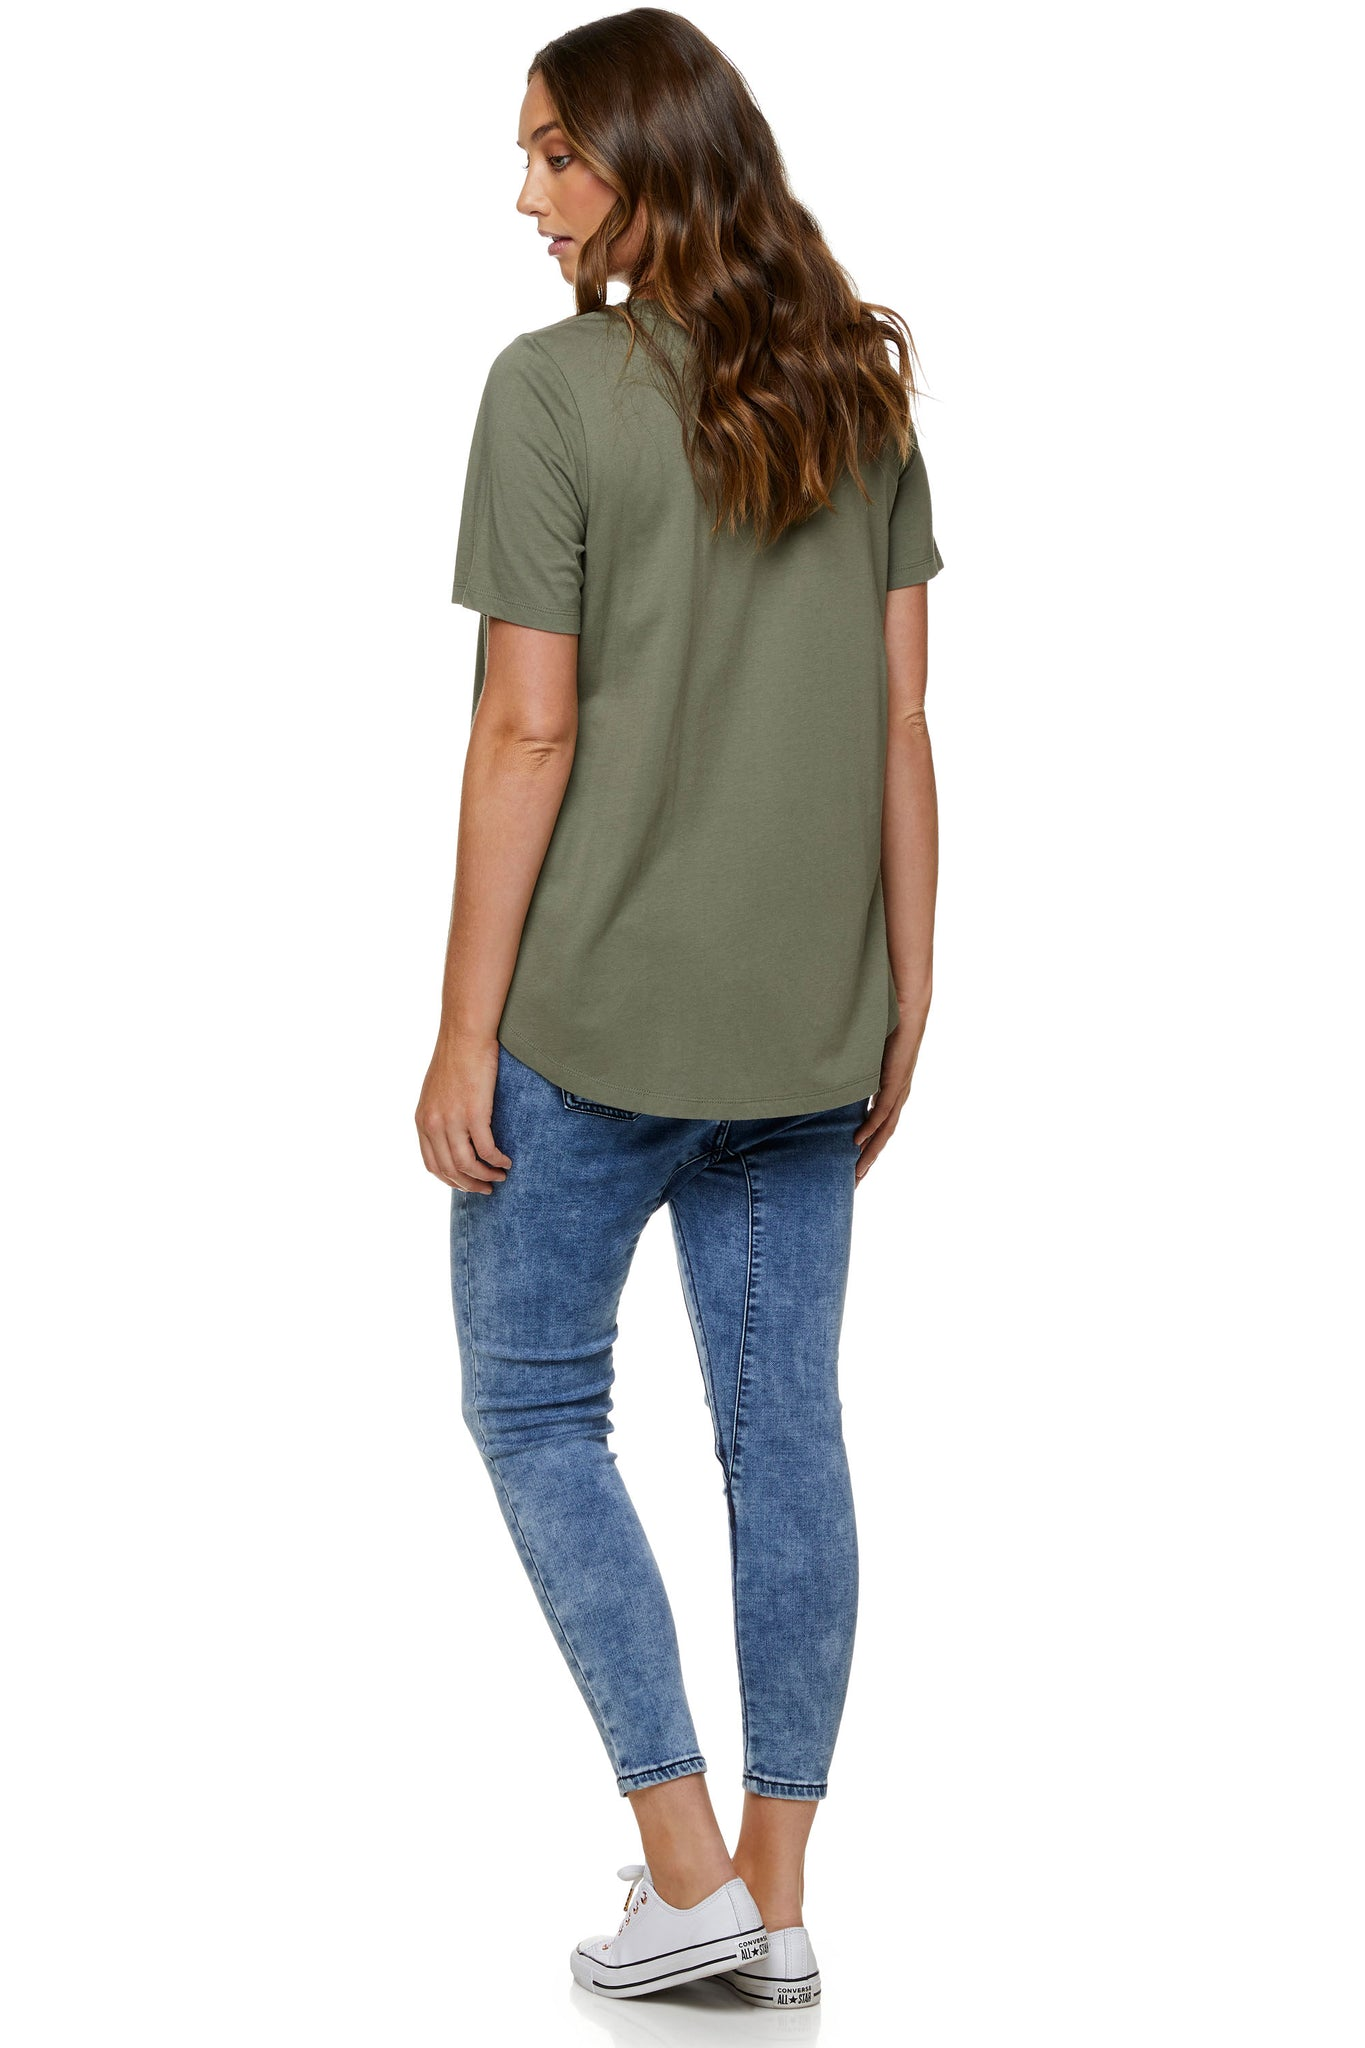 Khaki maternity t-shirt - Maternity top 7